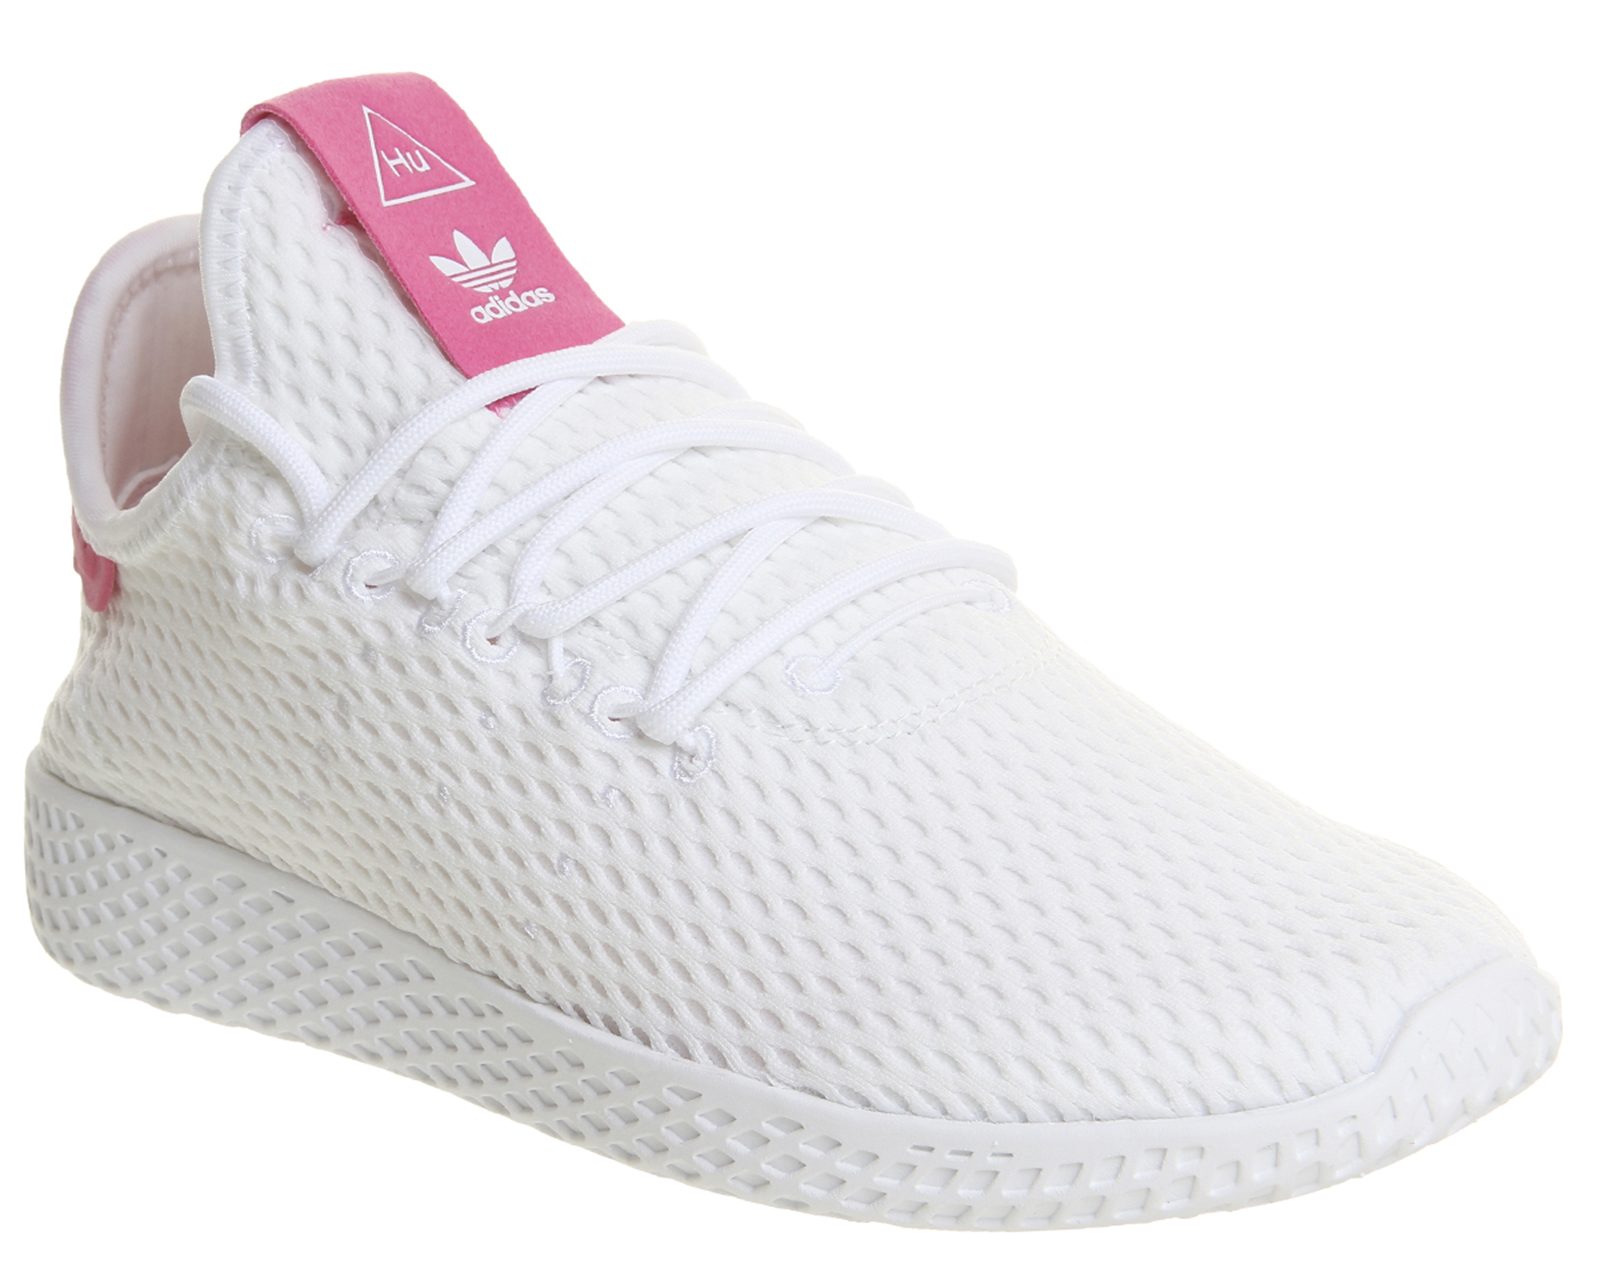 c87f2caec Sentinel Adidas Pw Tennis Hu WHITE SEMI SOLAR PINK Trainers Shoes